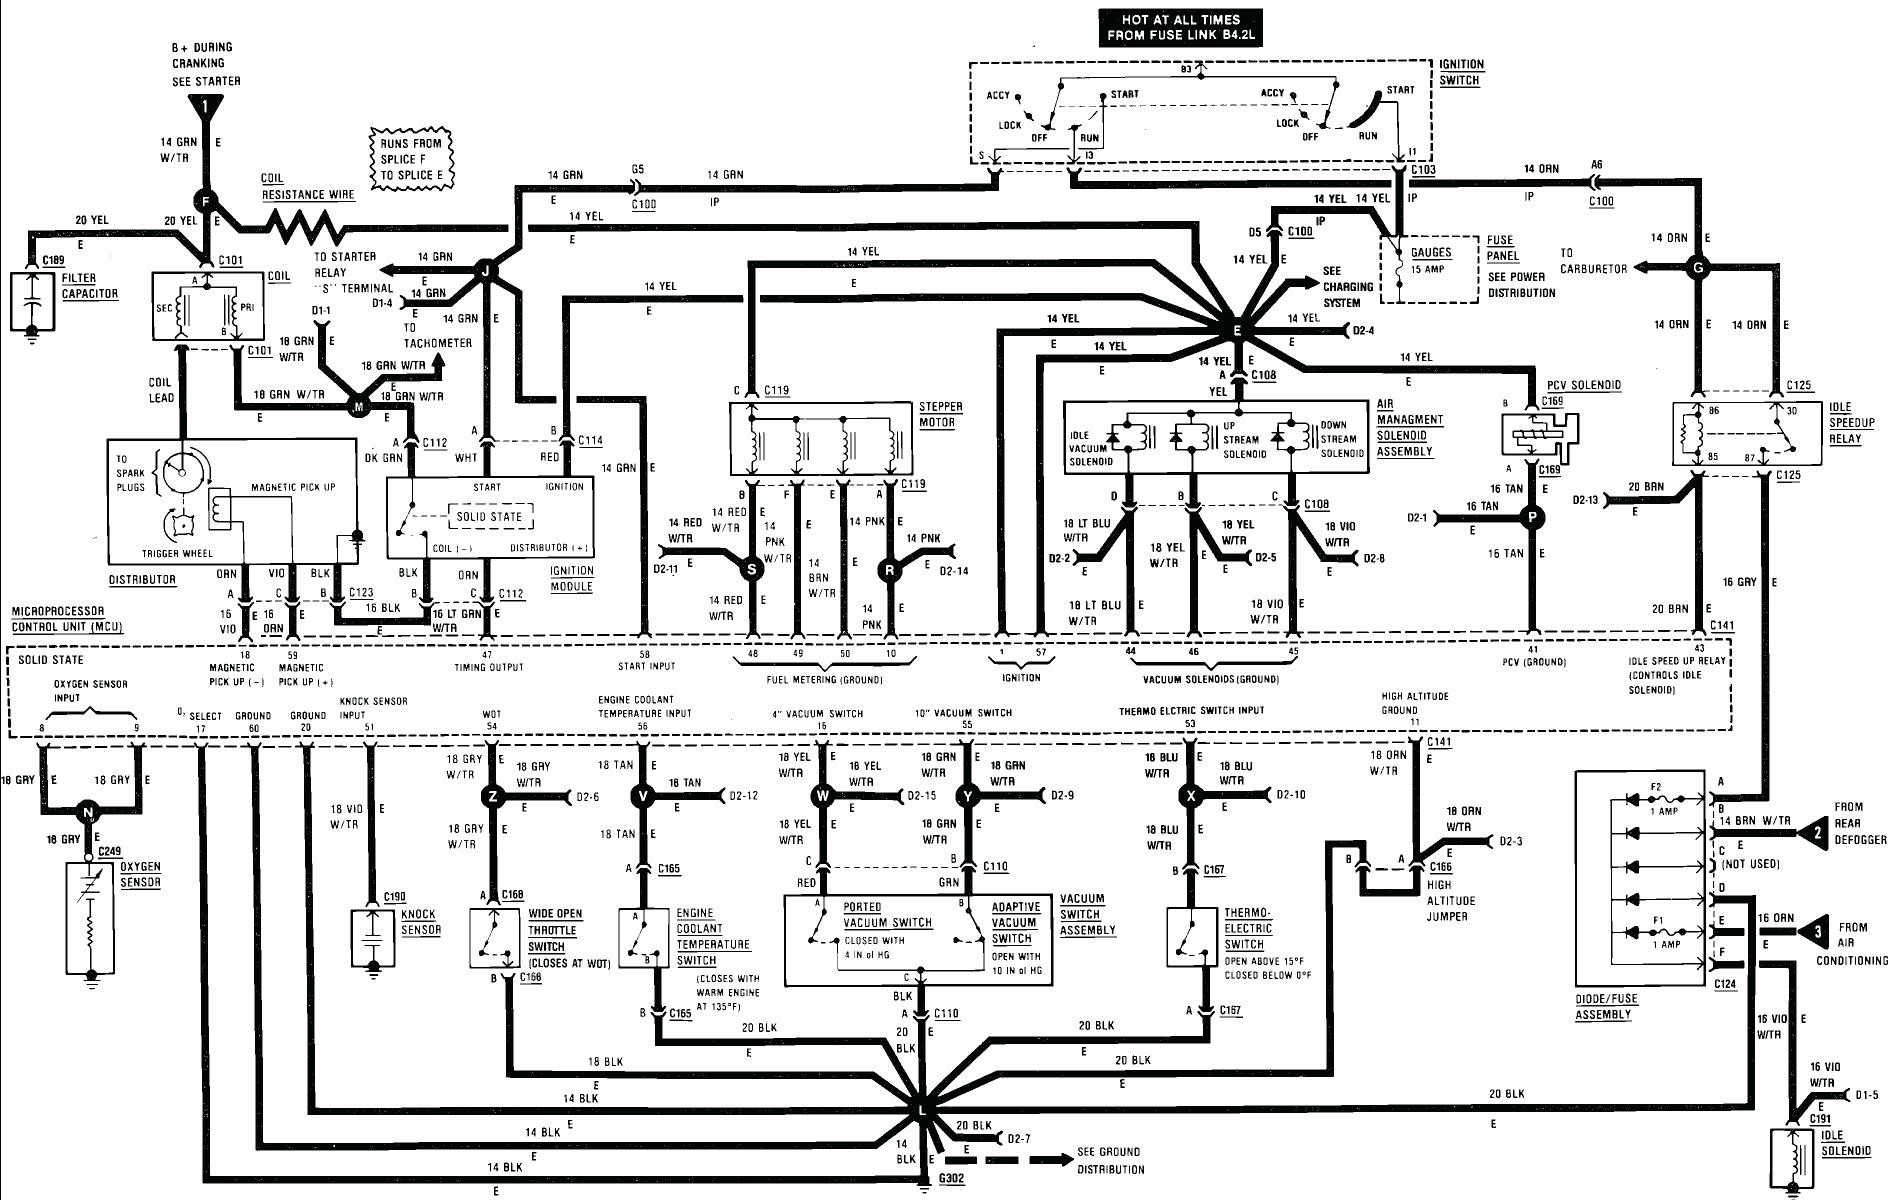 diagram] charging system wiring diagram for 1998 jeep wrangler full version  hd quality jeep wrangler - typetowingwiring.sciage-carottage-normandie.fr  wiring and fuse database